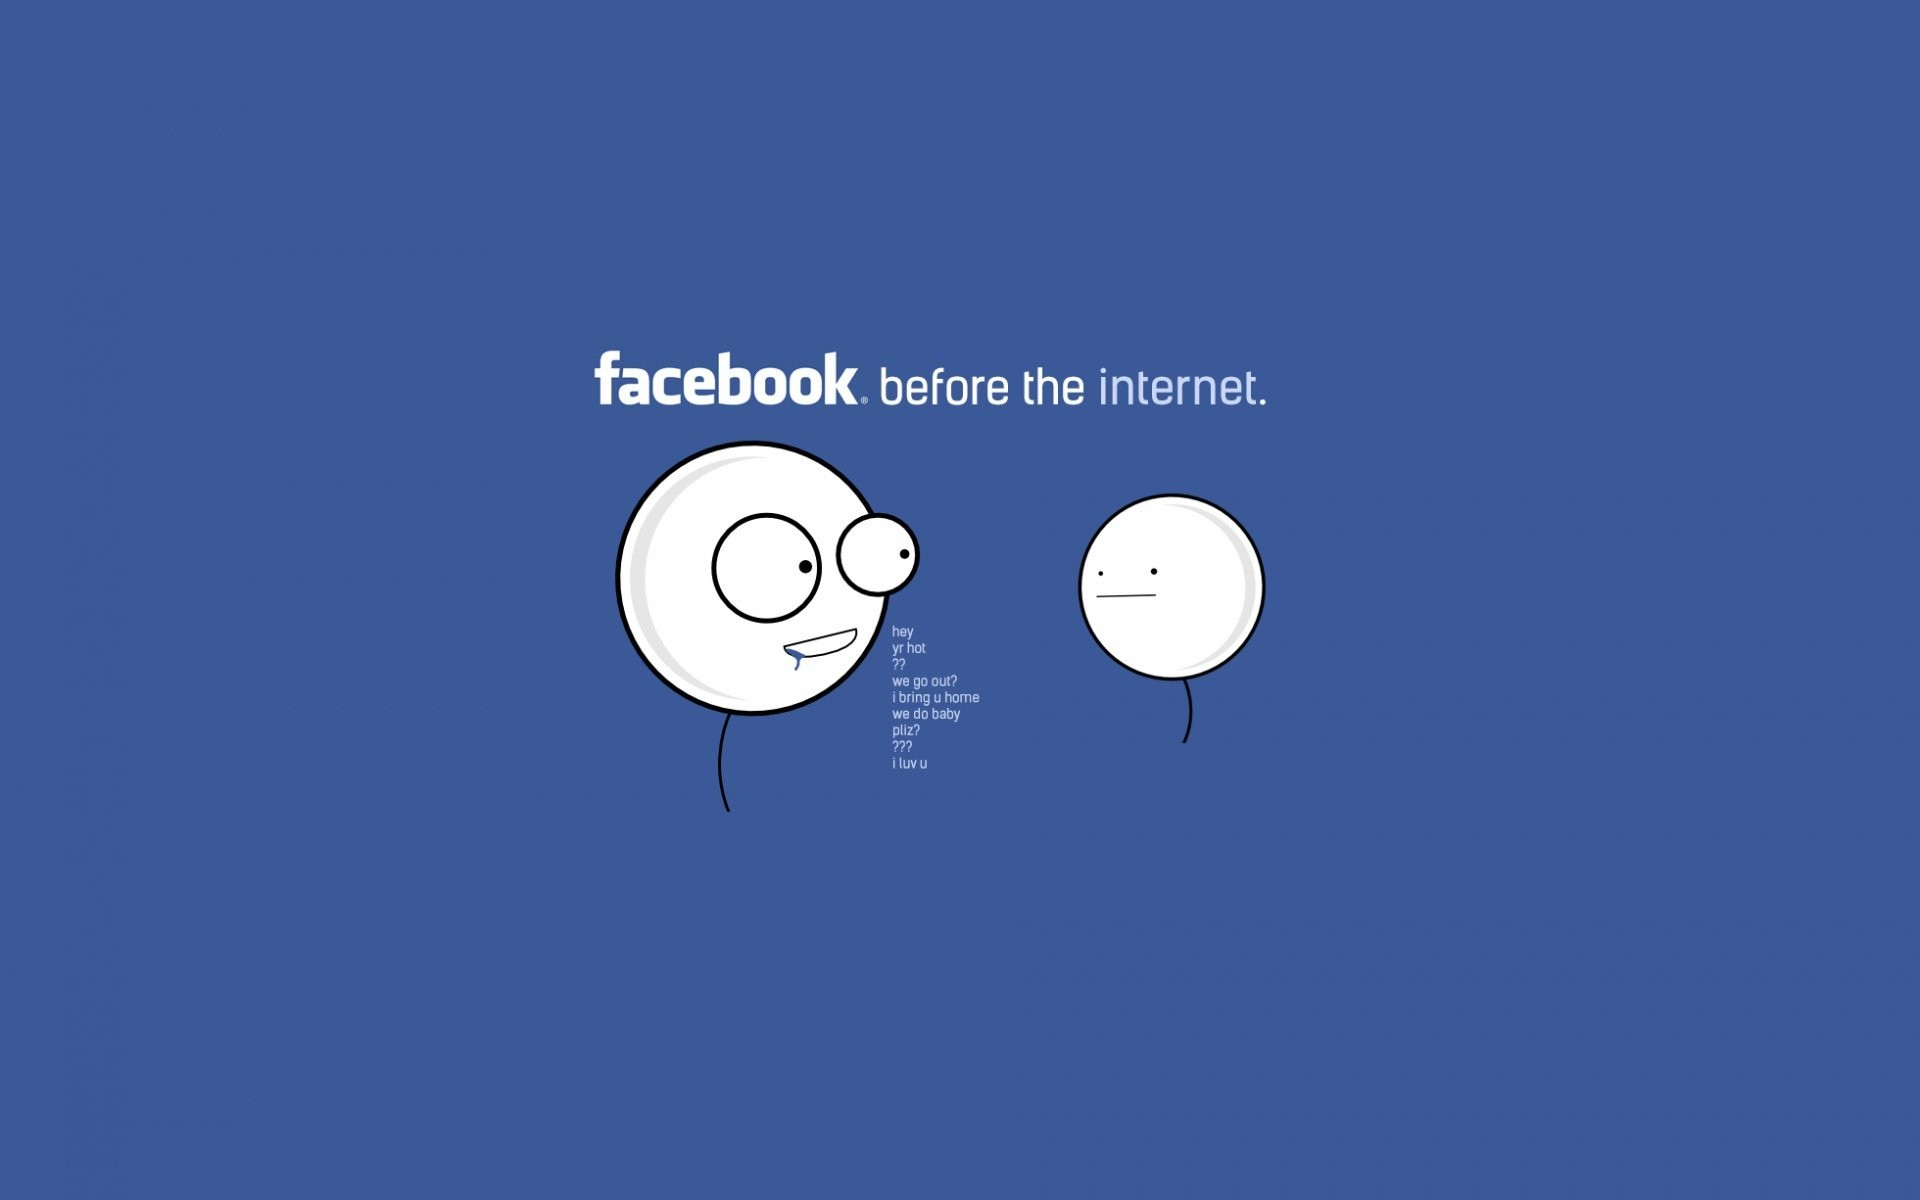 Funny Wallpapers For Facebook